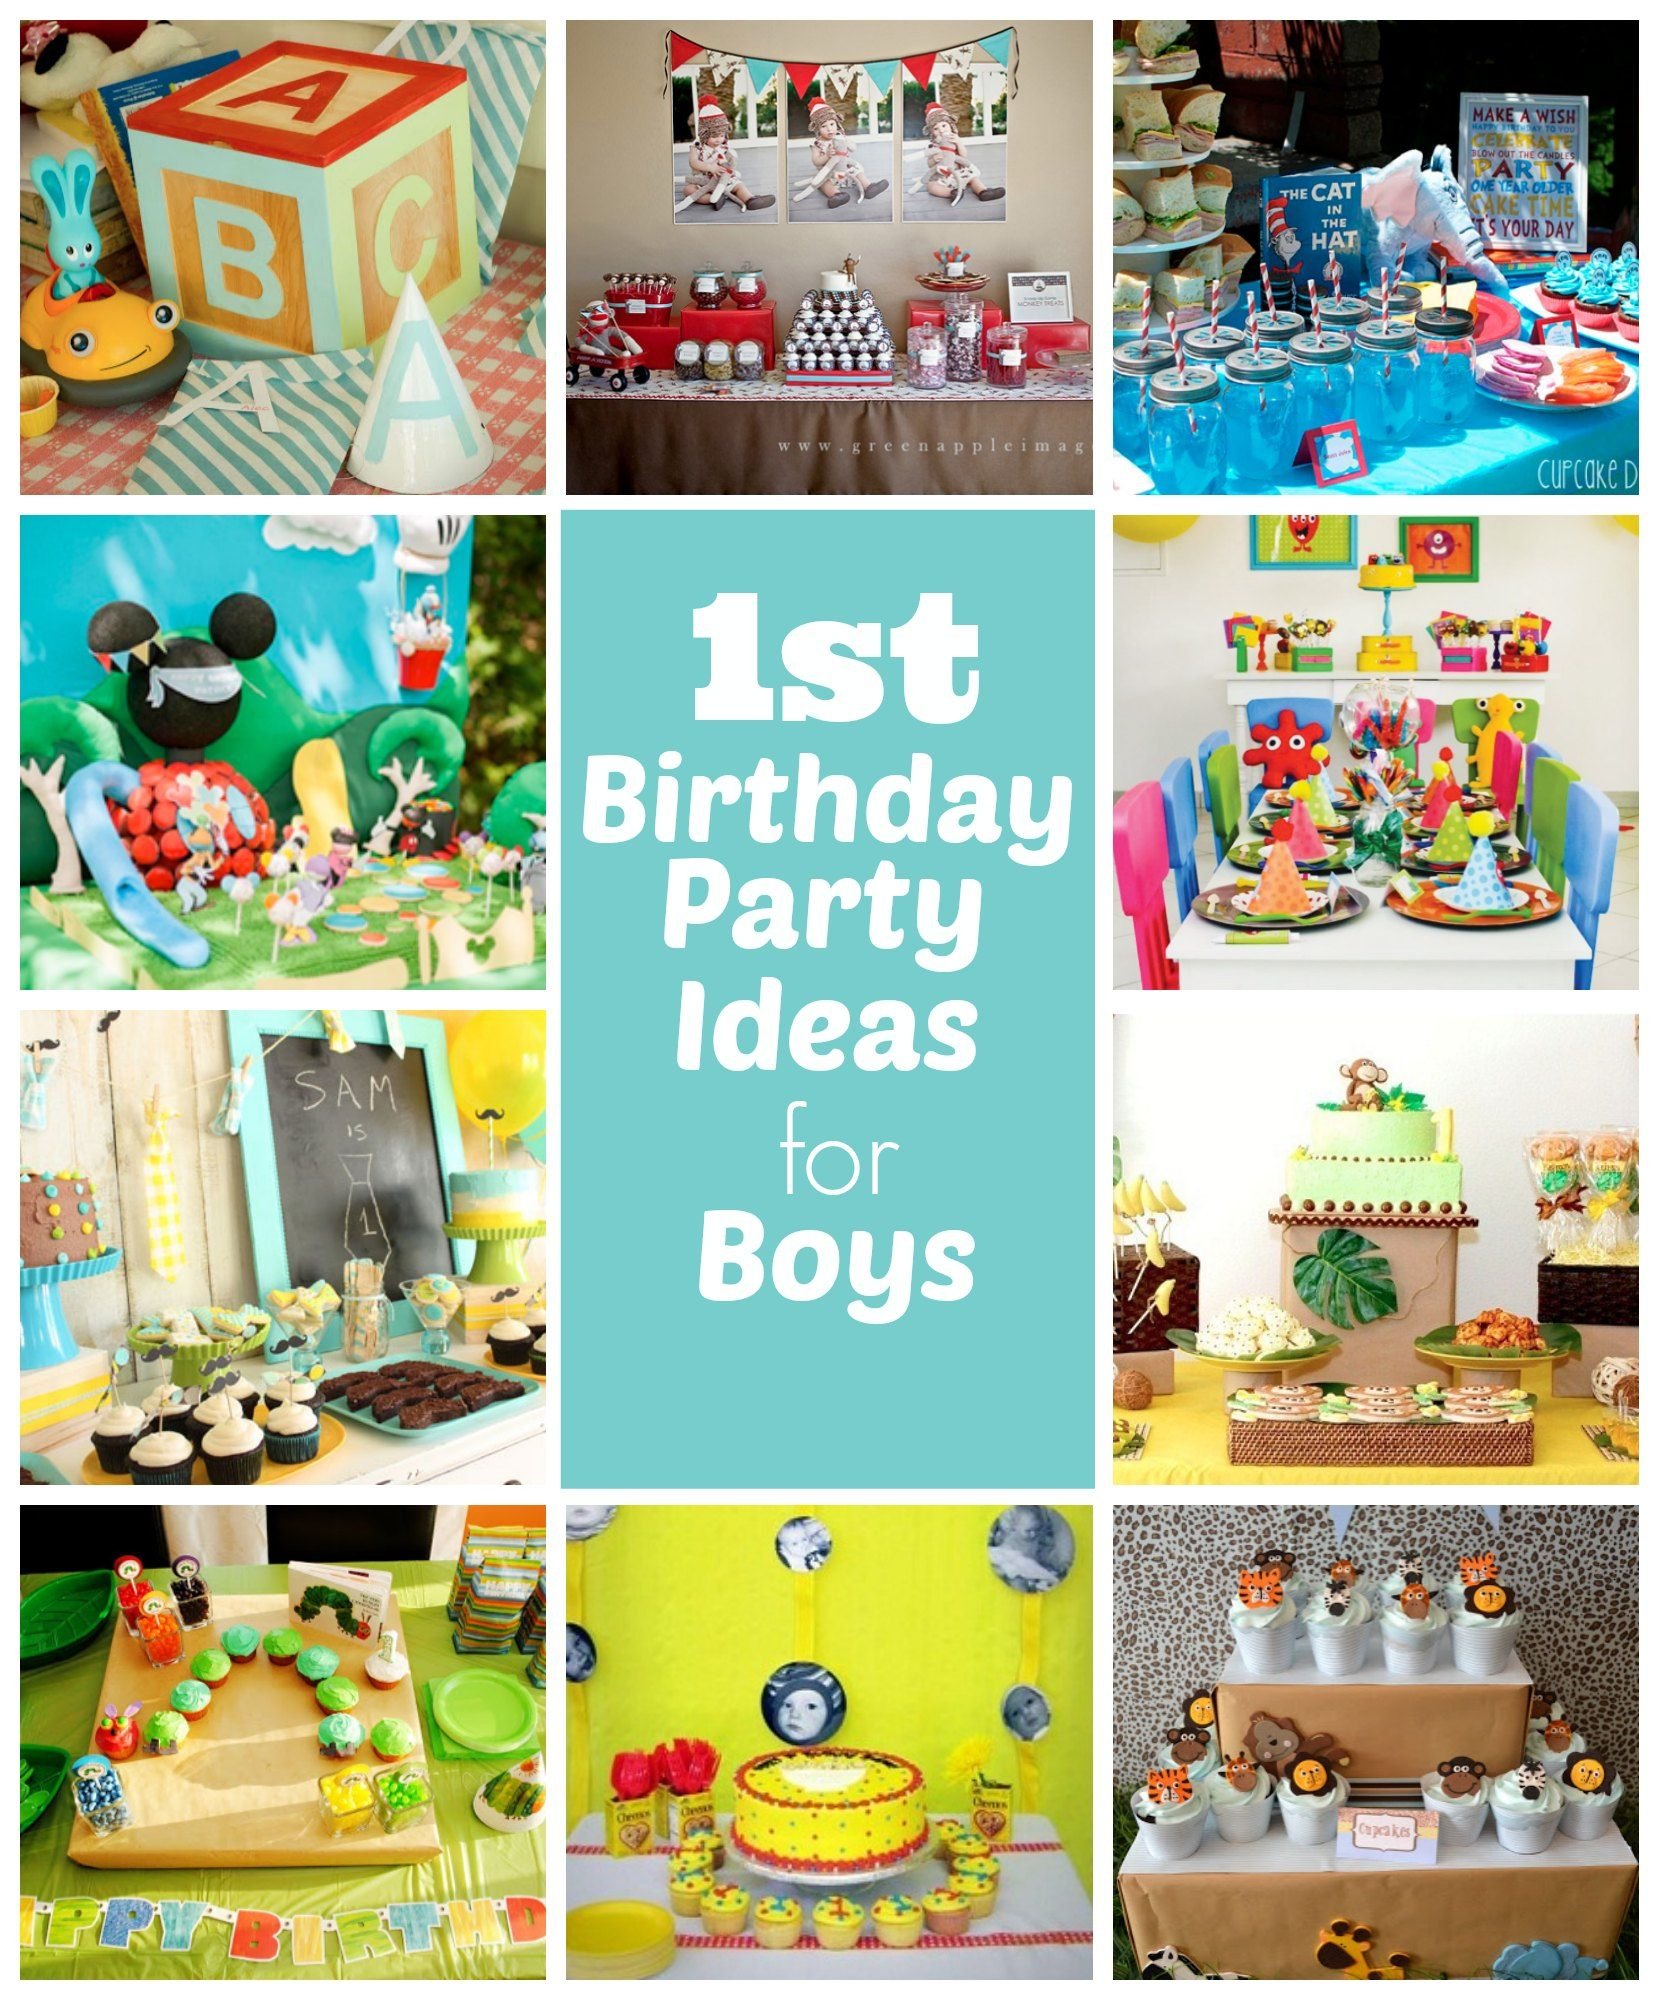 1st Birthday Party Ideas For Boys